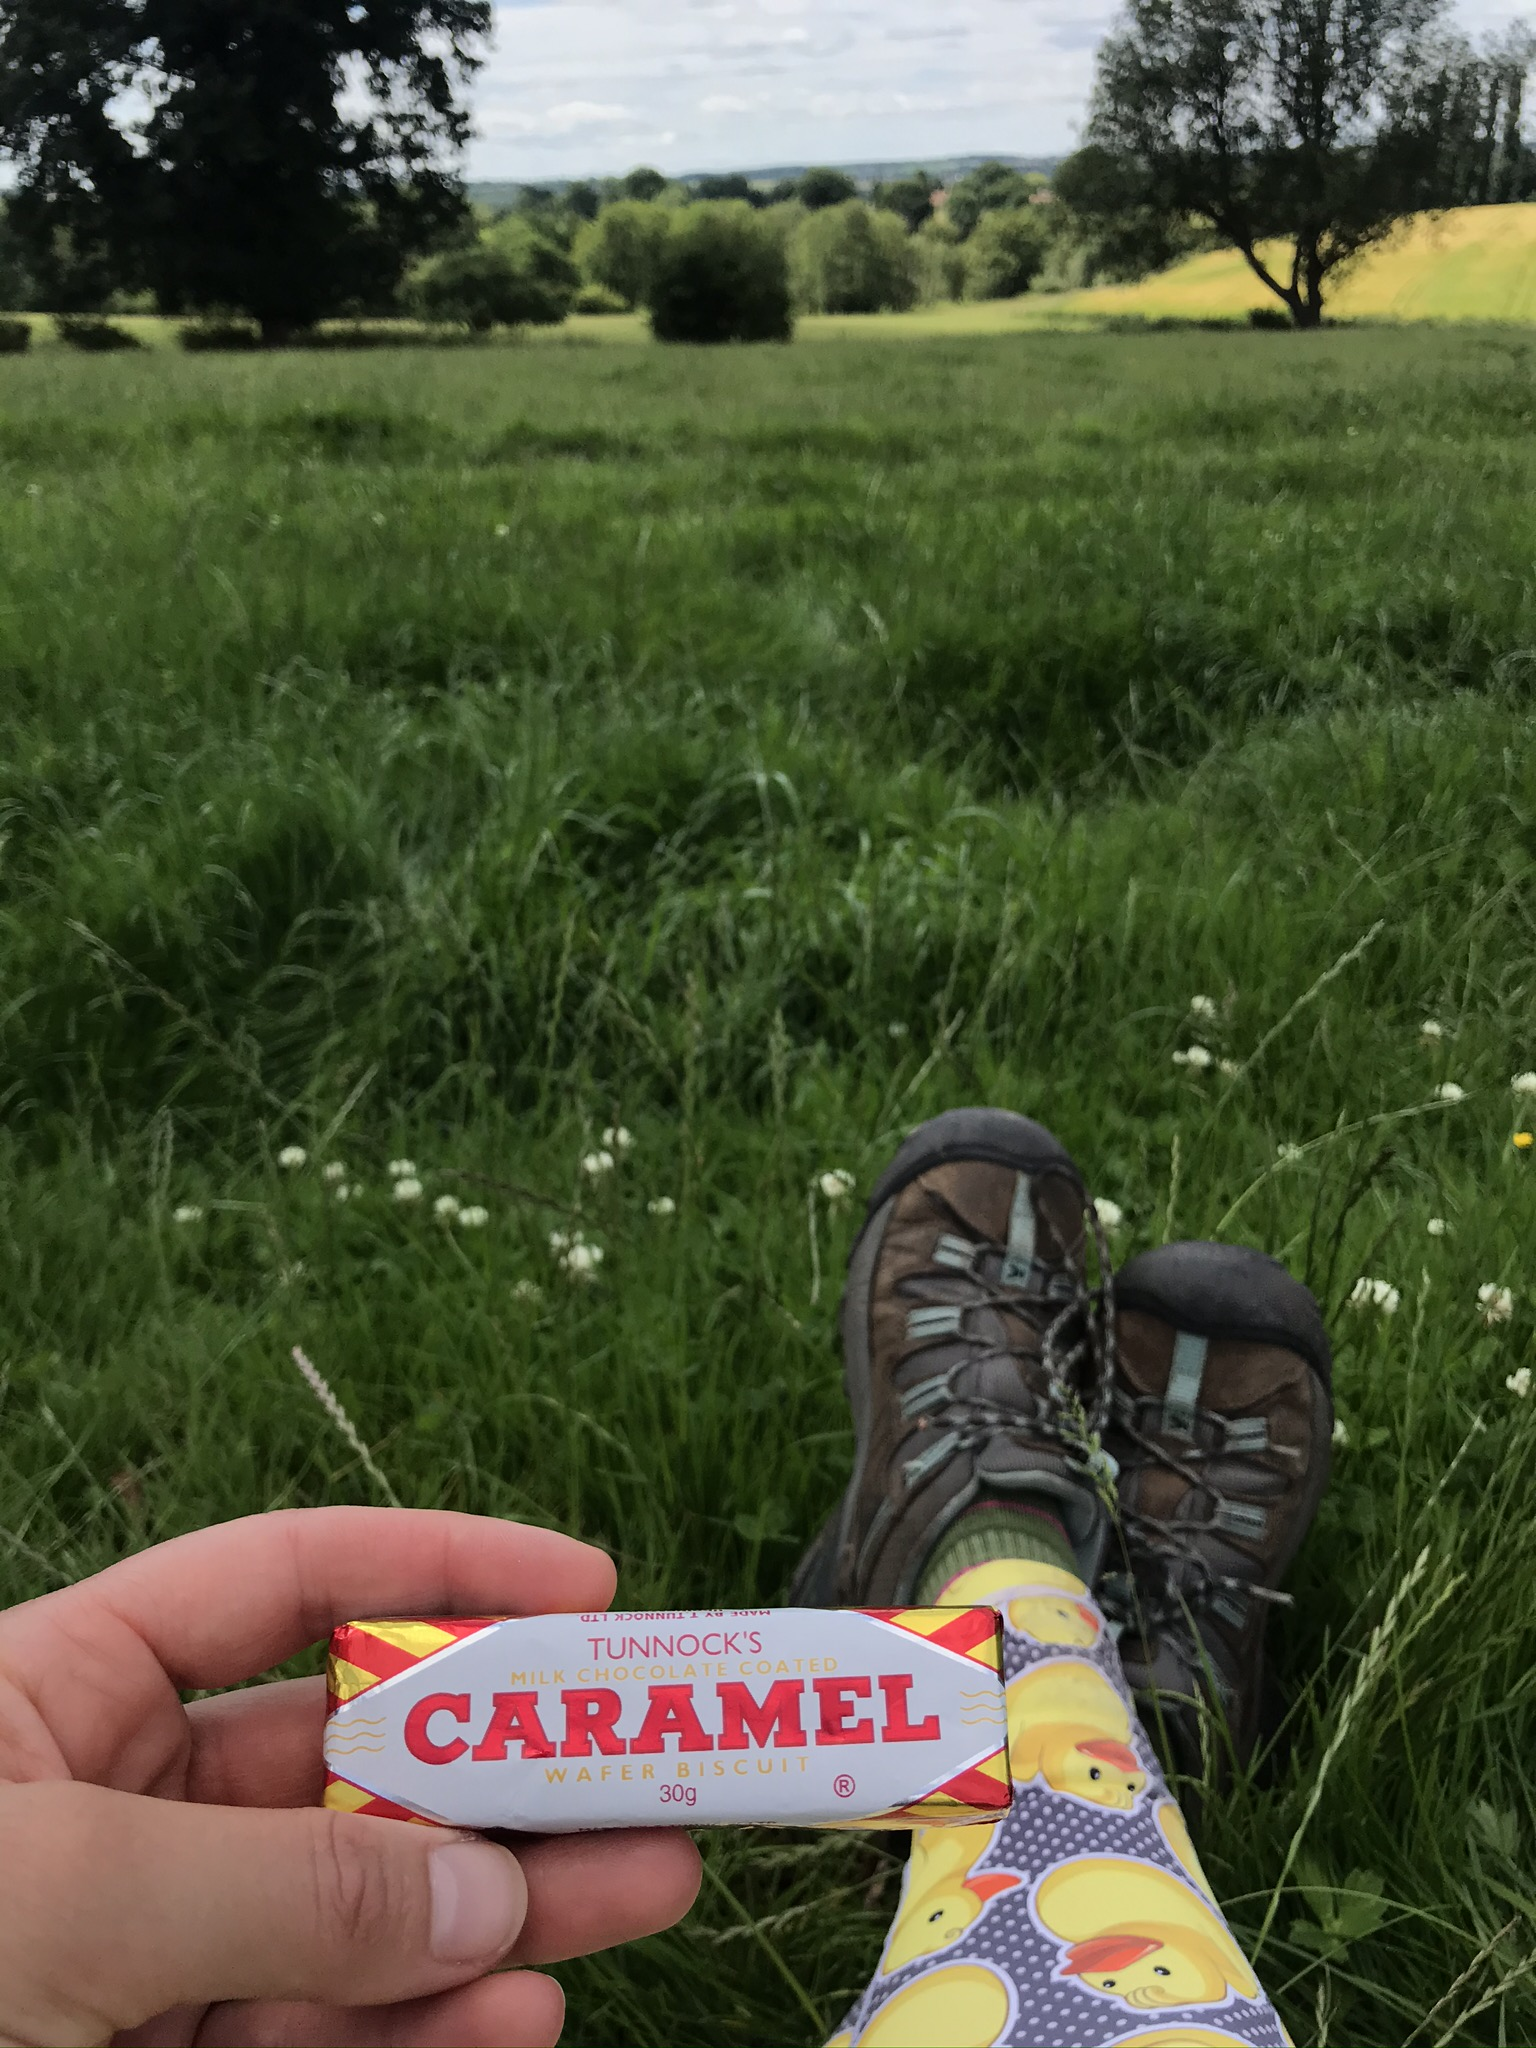 A hand holds a Tunnocks bar, legs are stretched out on meadow grass with a long view over trees